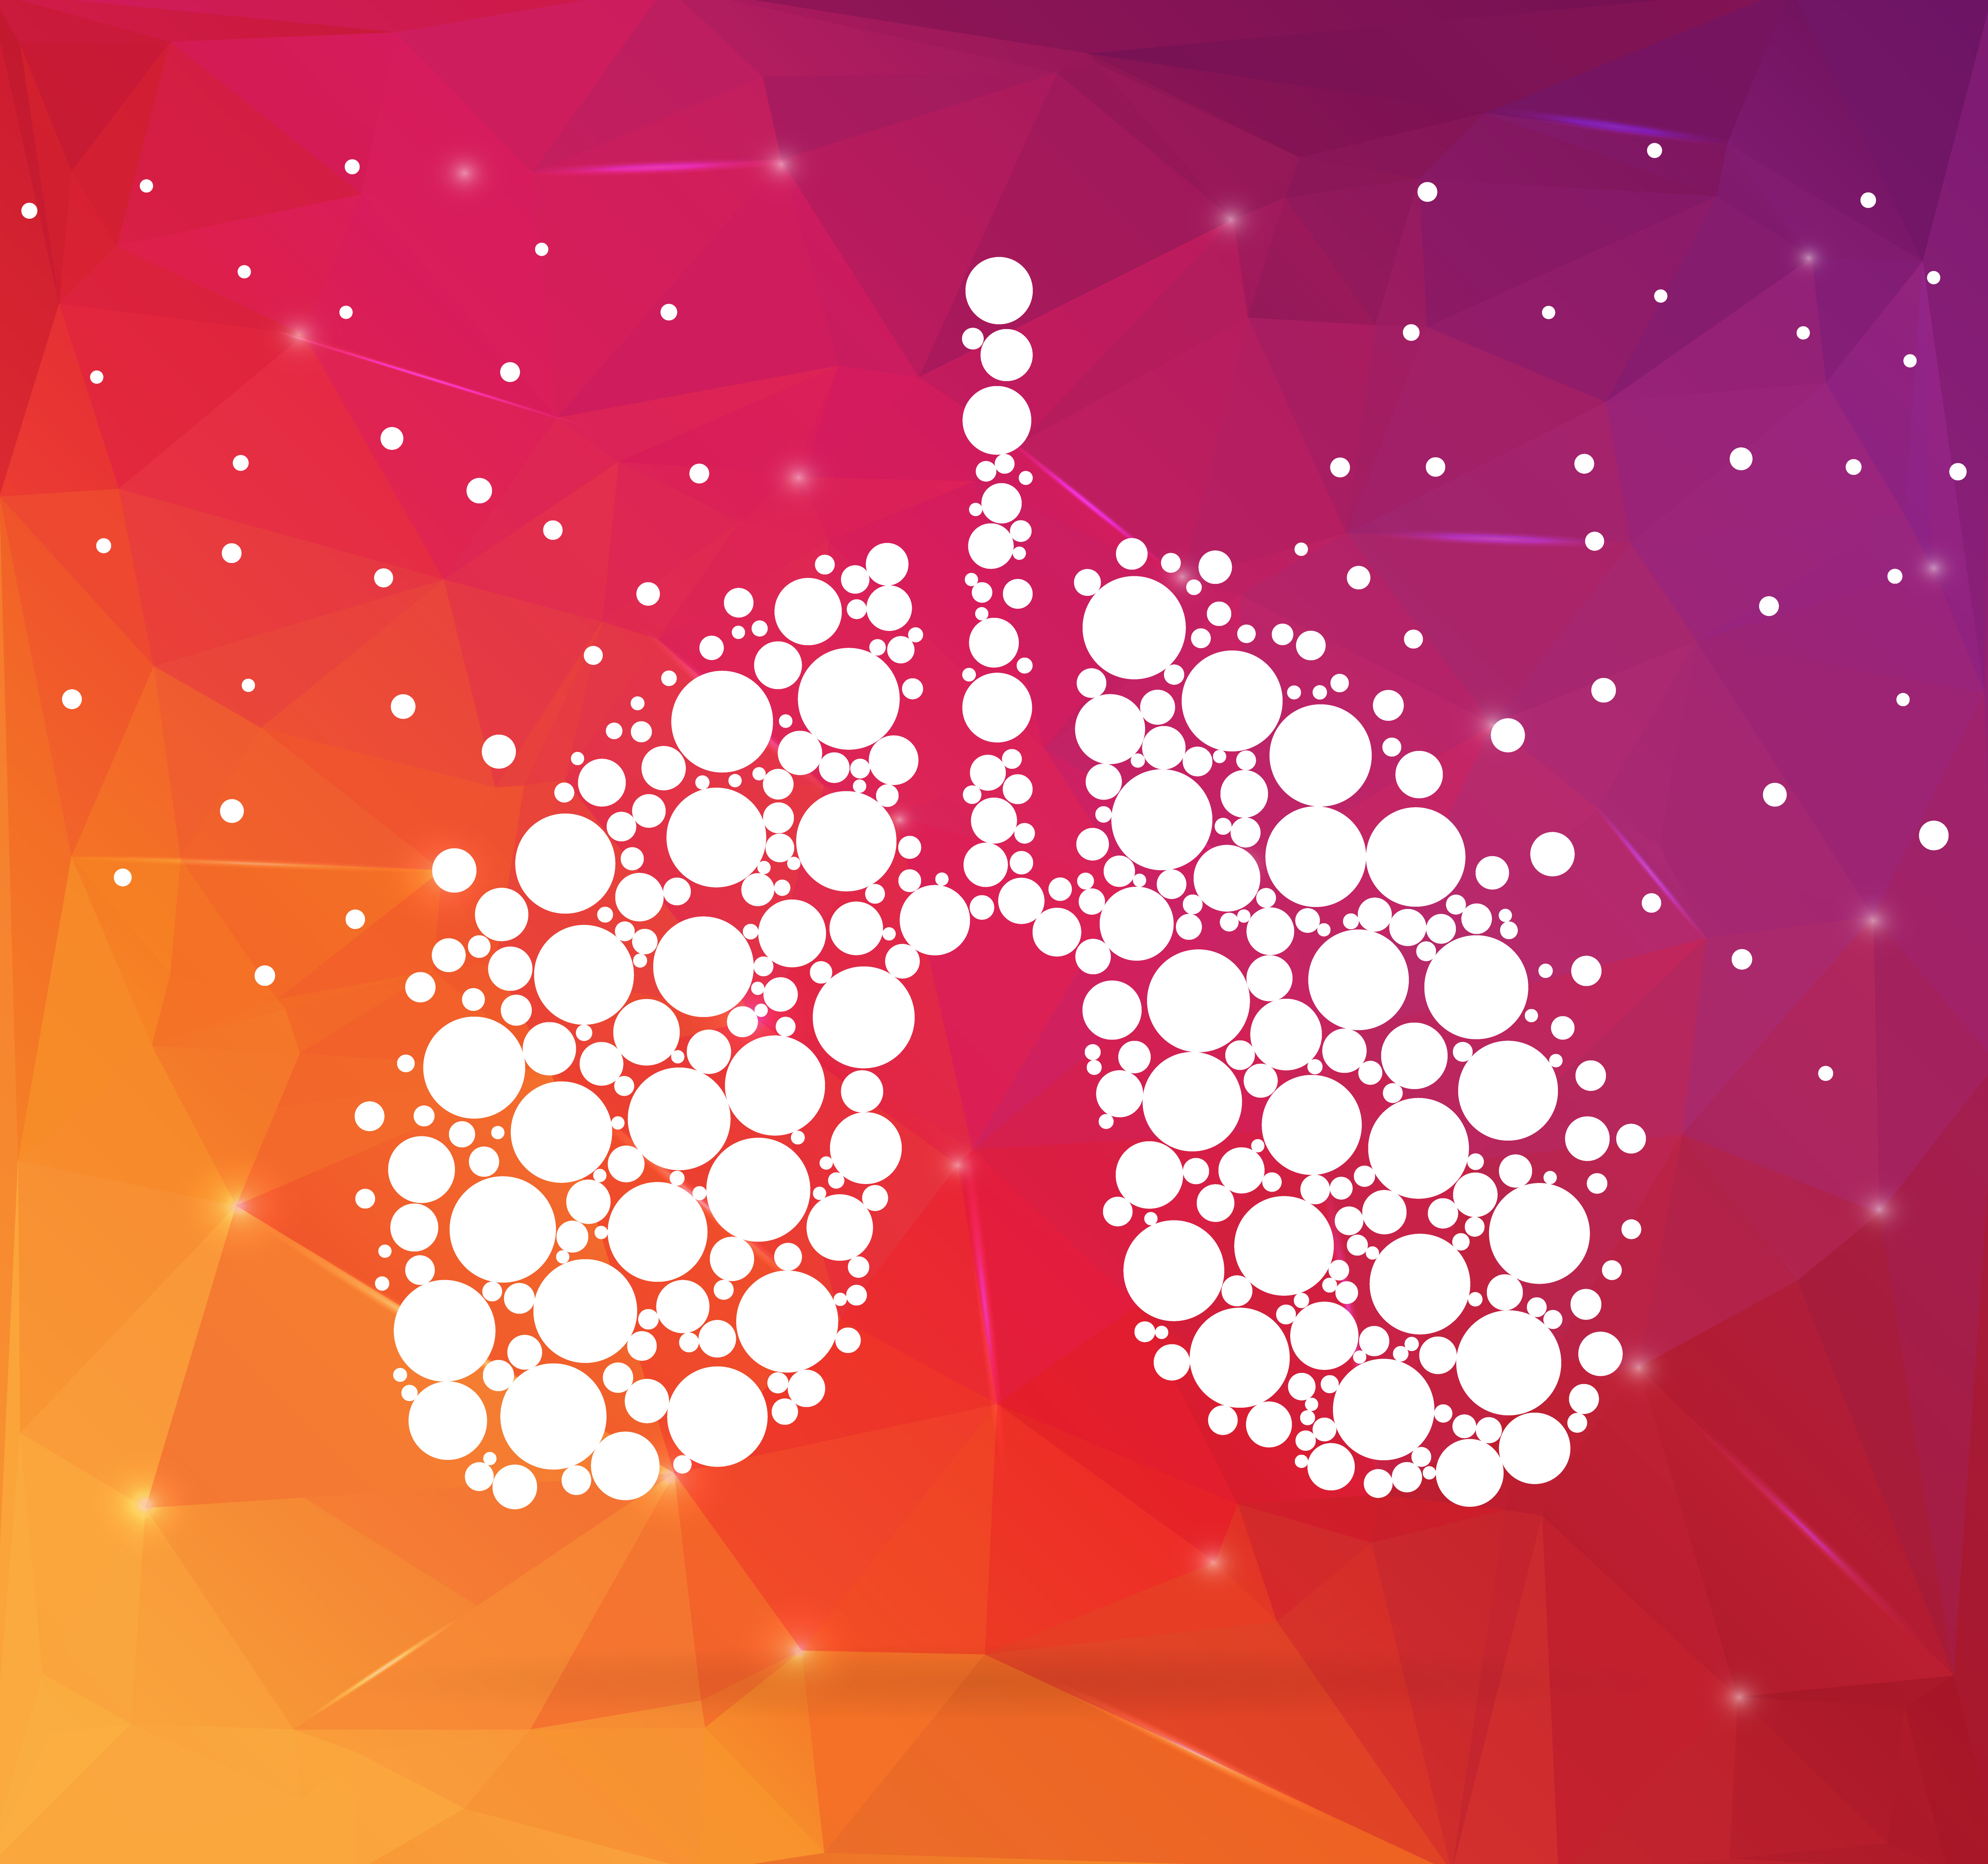 IQWiG Dossier Assessment Shows No Added Benefit of Ceritinib (Zykadia) in NSCLC